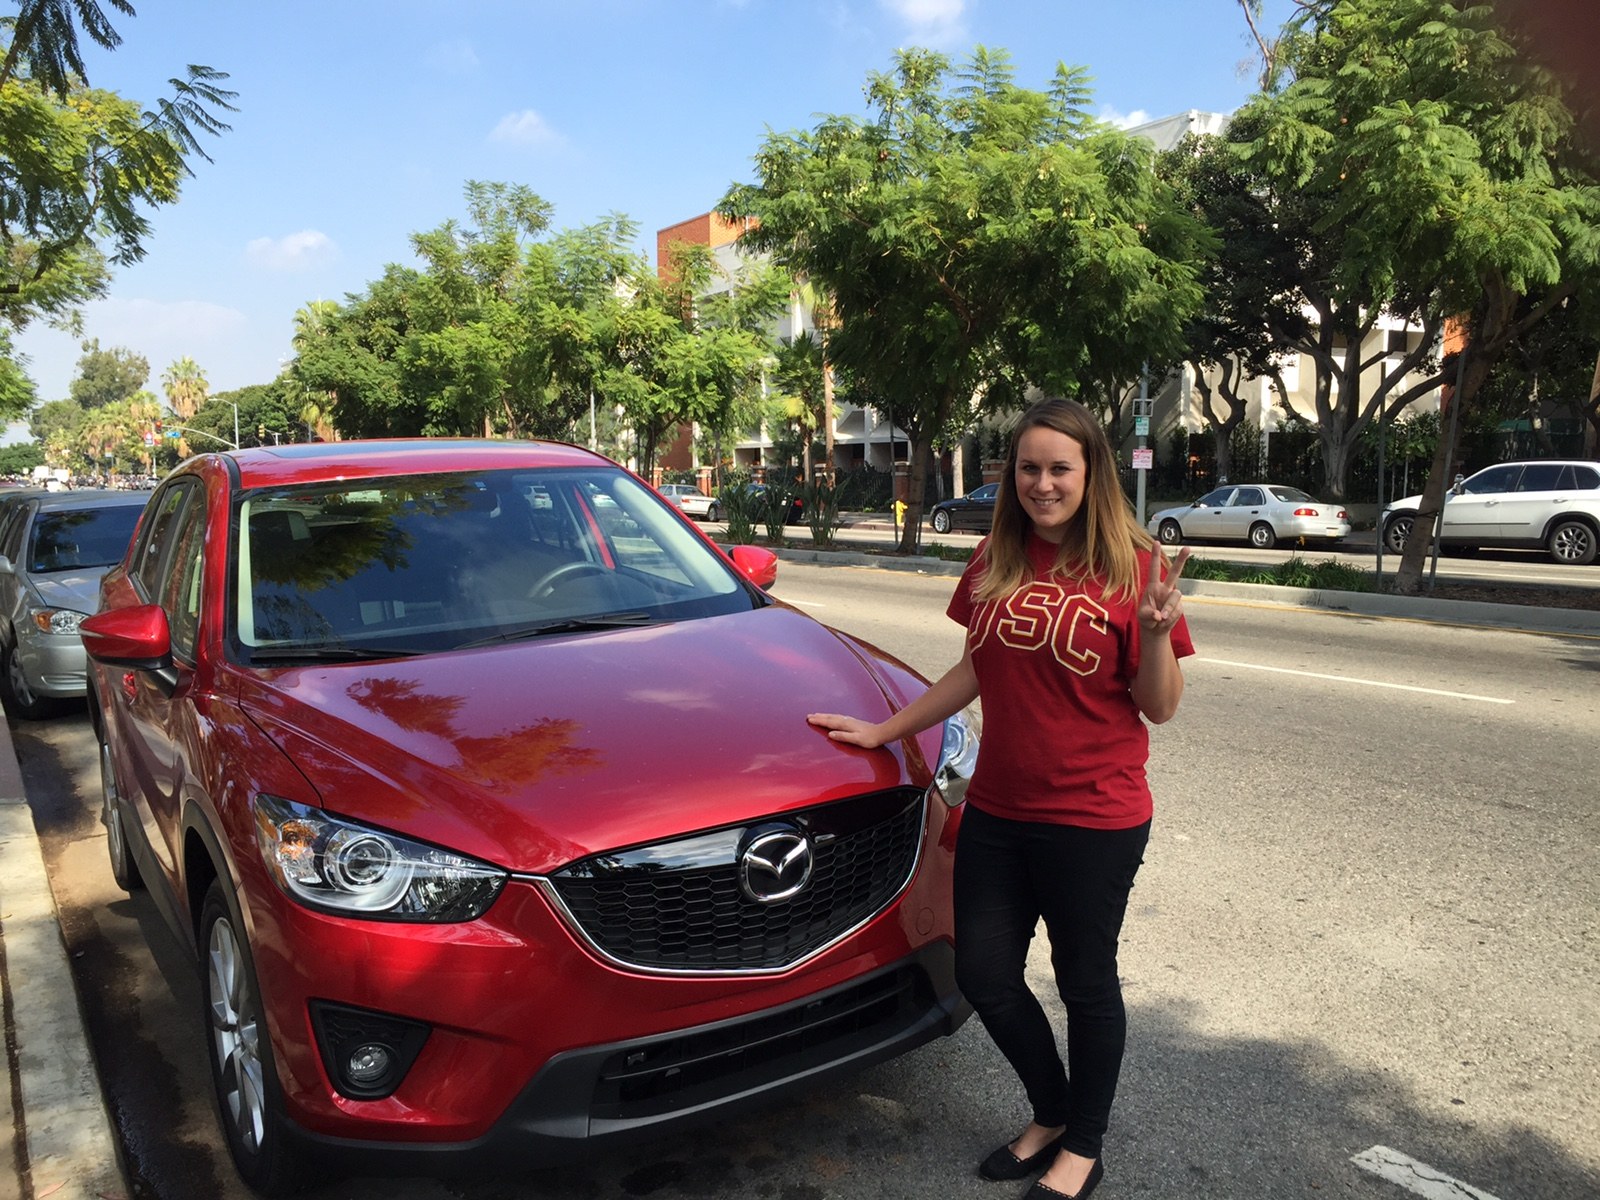 Fight on! Experiencing Trojan Family Weekend at USC with the Mazda CX-5